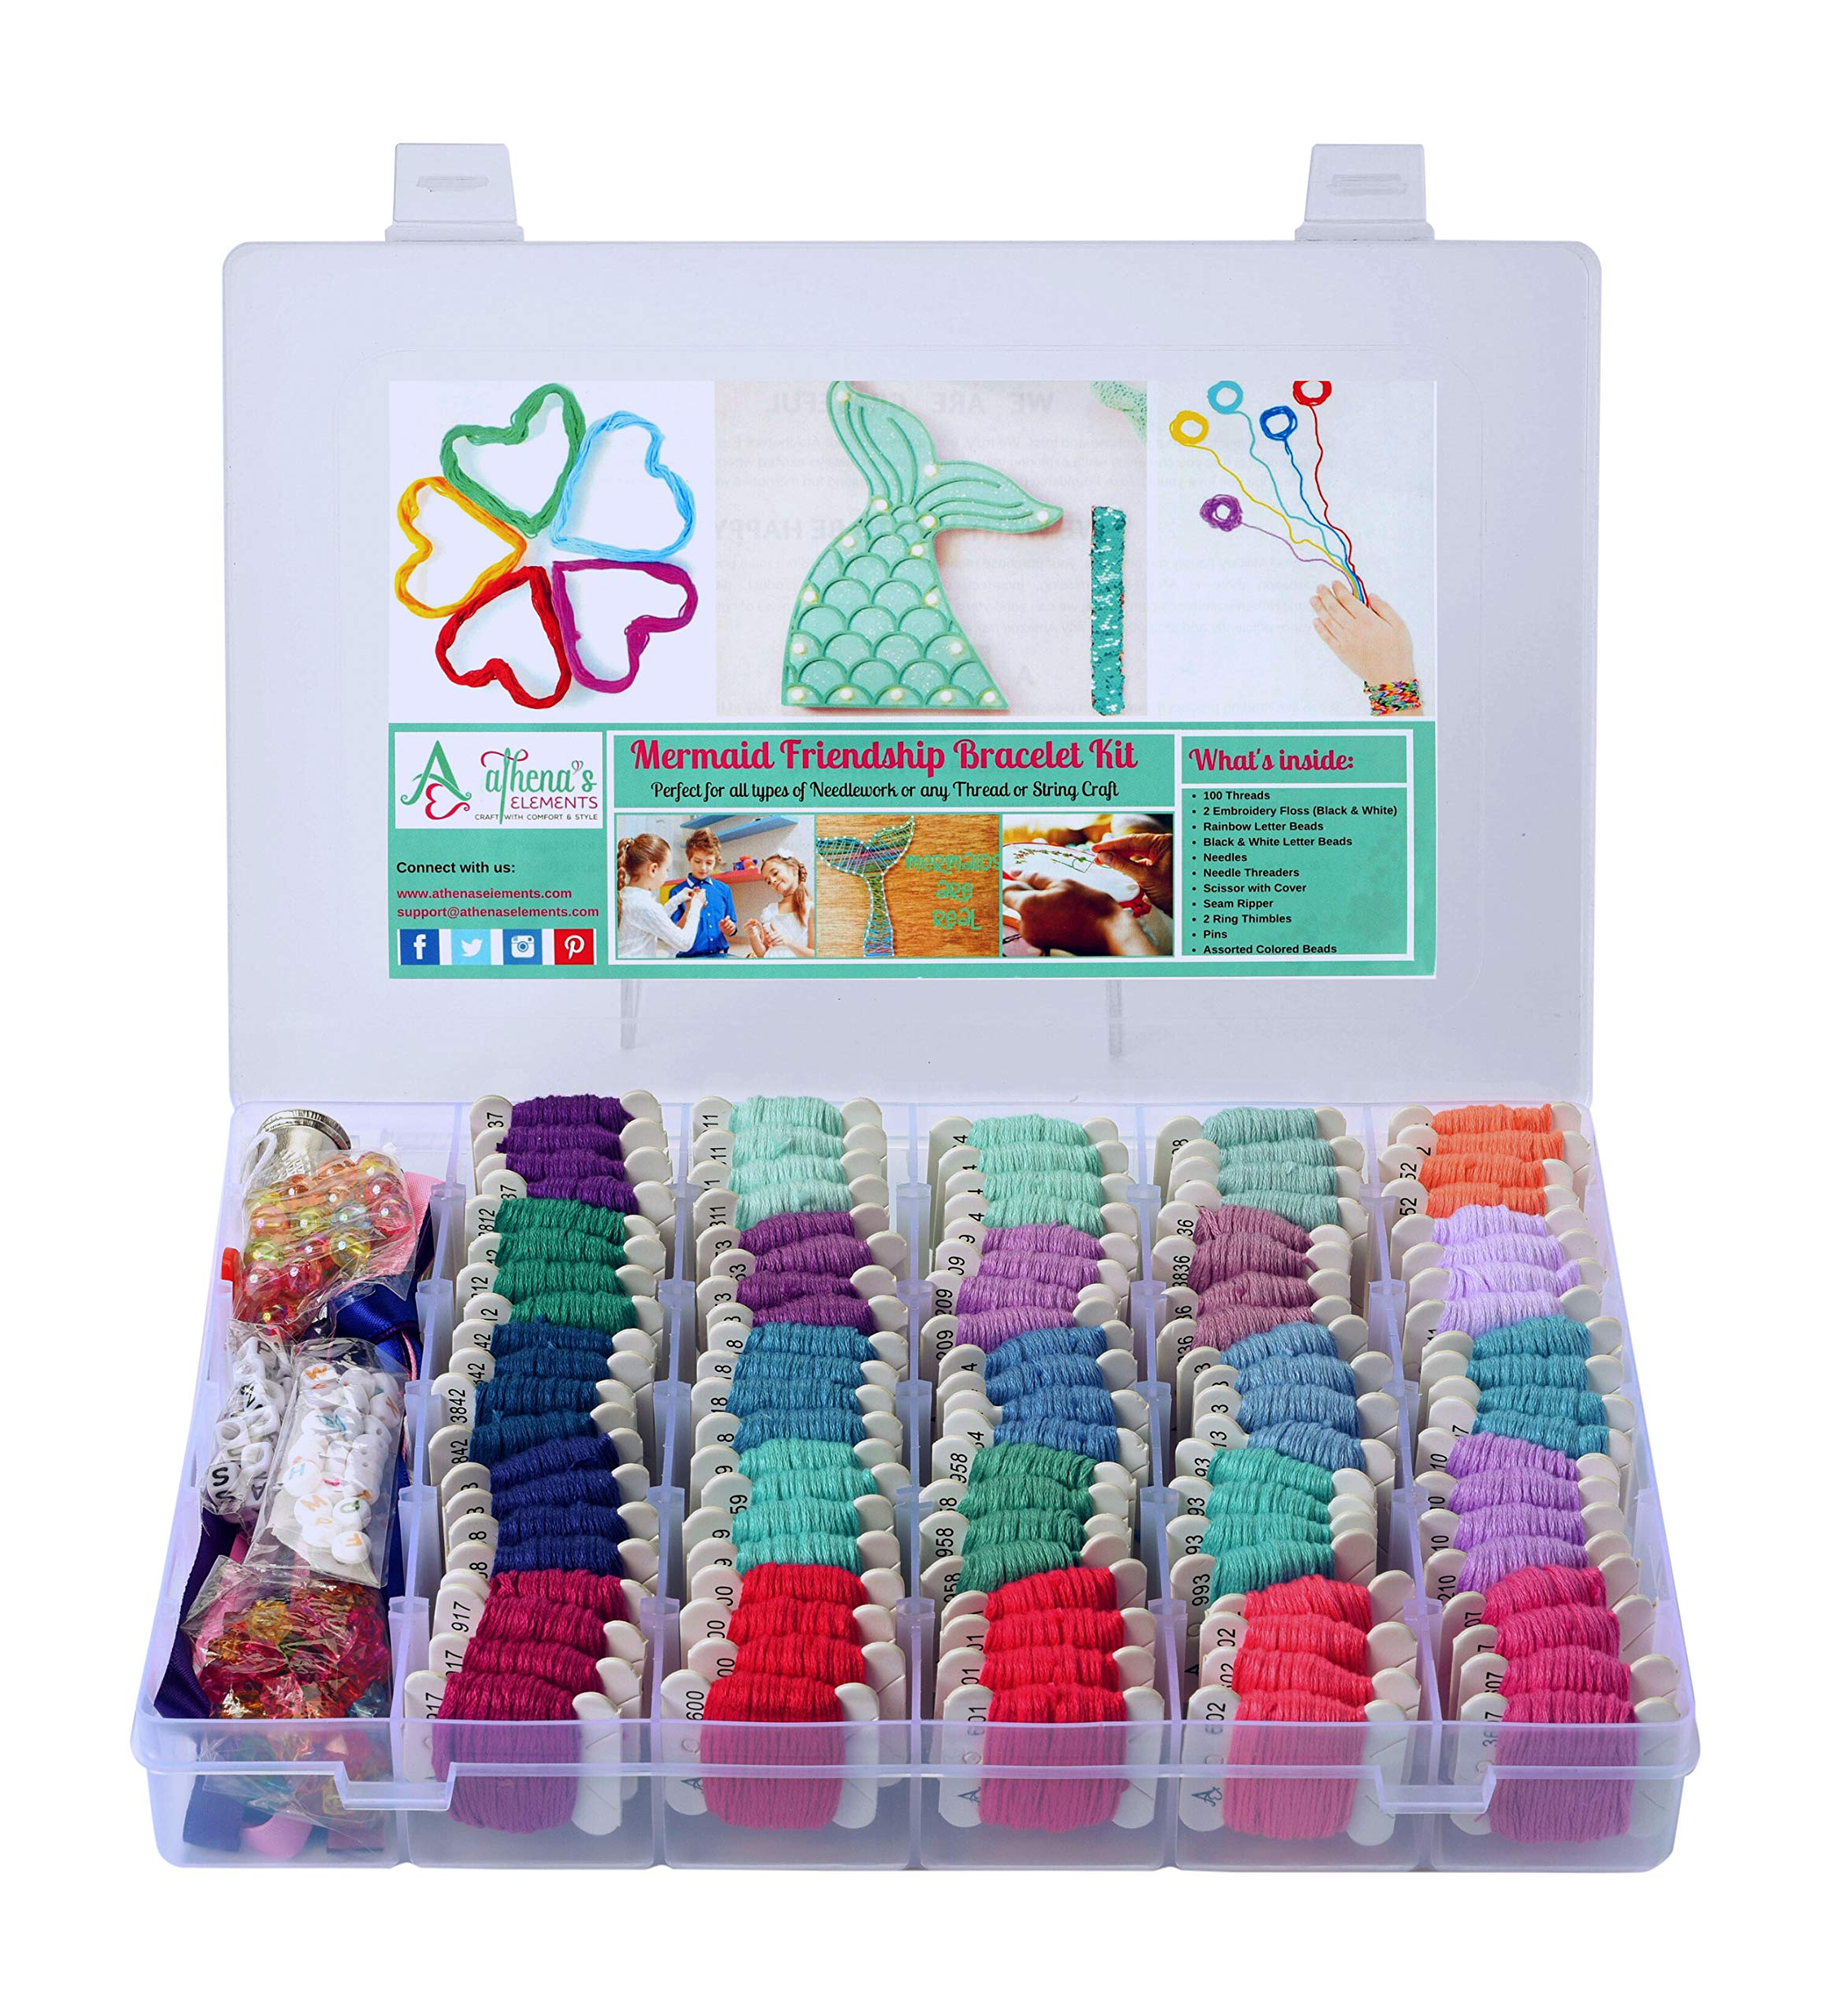 Mermaid DIY Friendship Bracelet String Kit Embroidery Thread and Accessories - Colors are Coded Embroidery Floss Numbers- Cross Stitch, String, Thread Craft Supplies - Perfect Gift for Girls 7 to 12